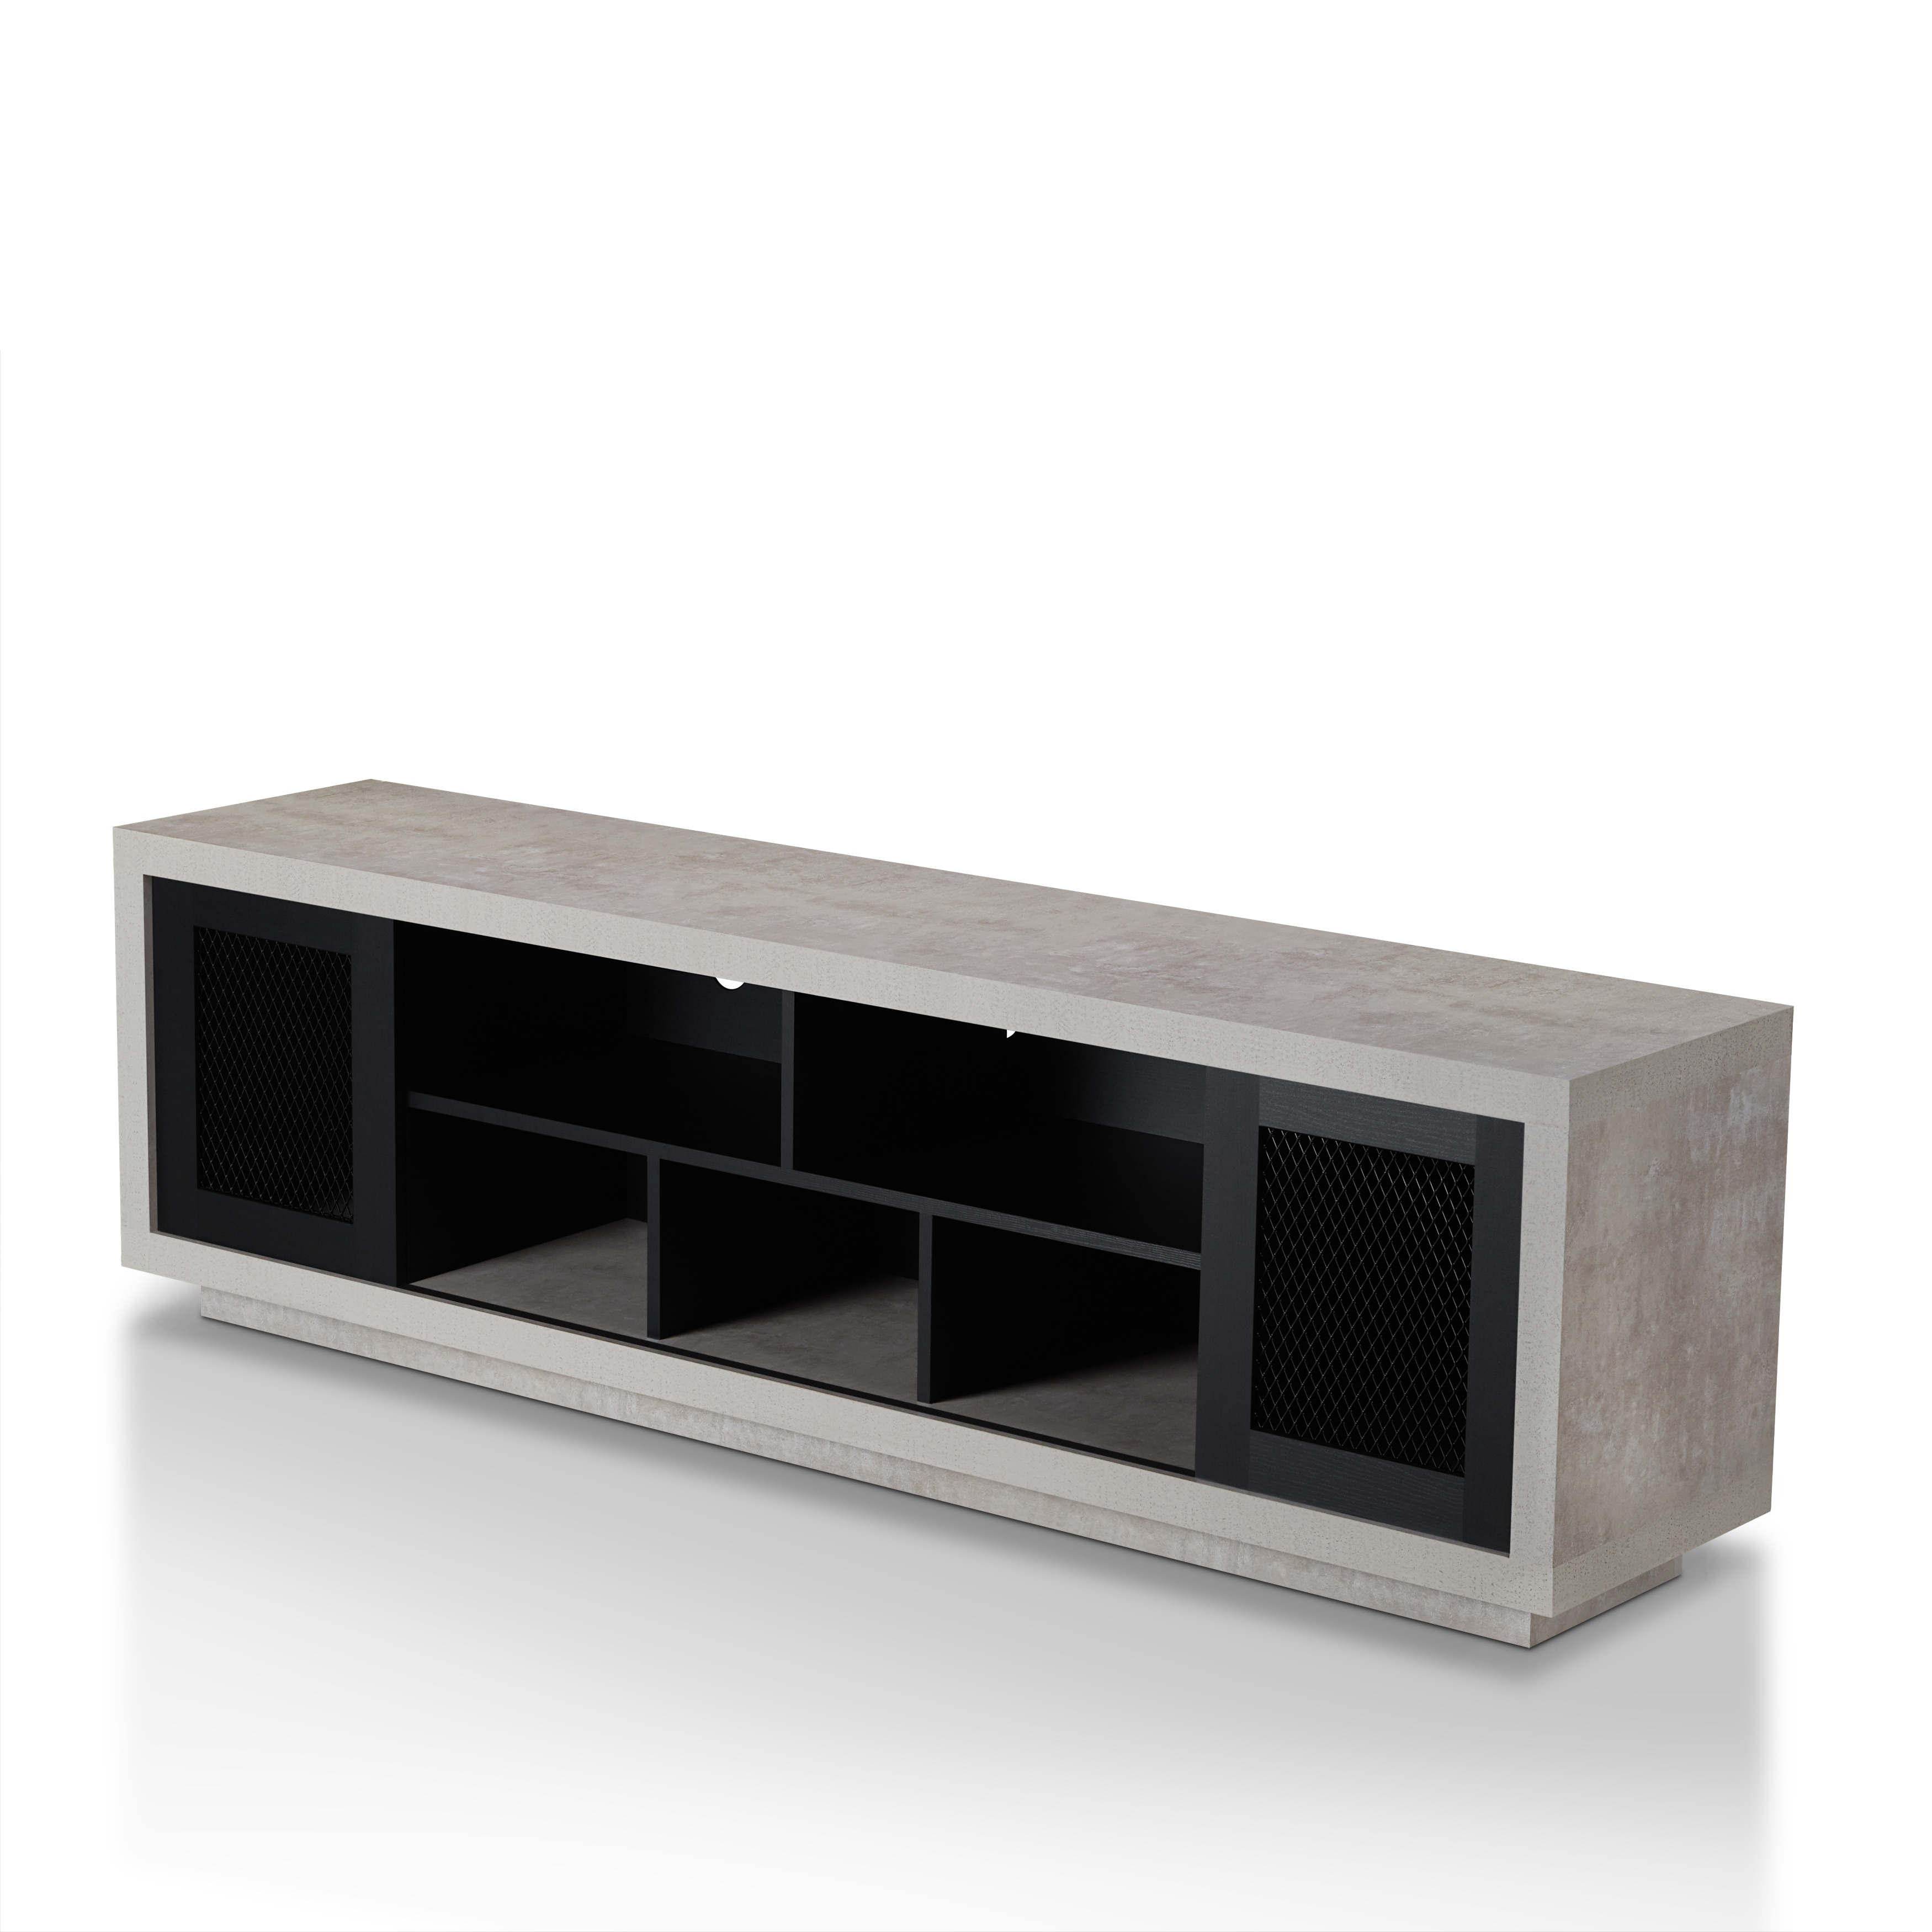 Furniture Of America Selefin Industrial Cement Like Multi Storage TV Stand    Free Shipping Today   Overstock.com   23150823